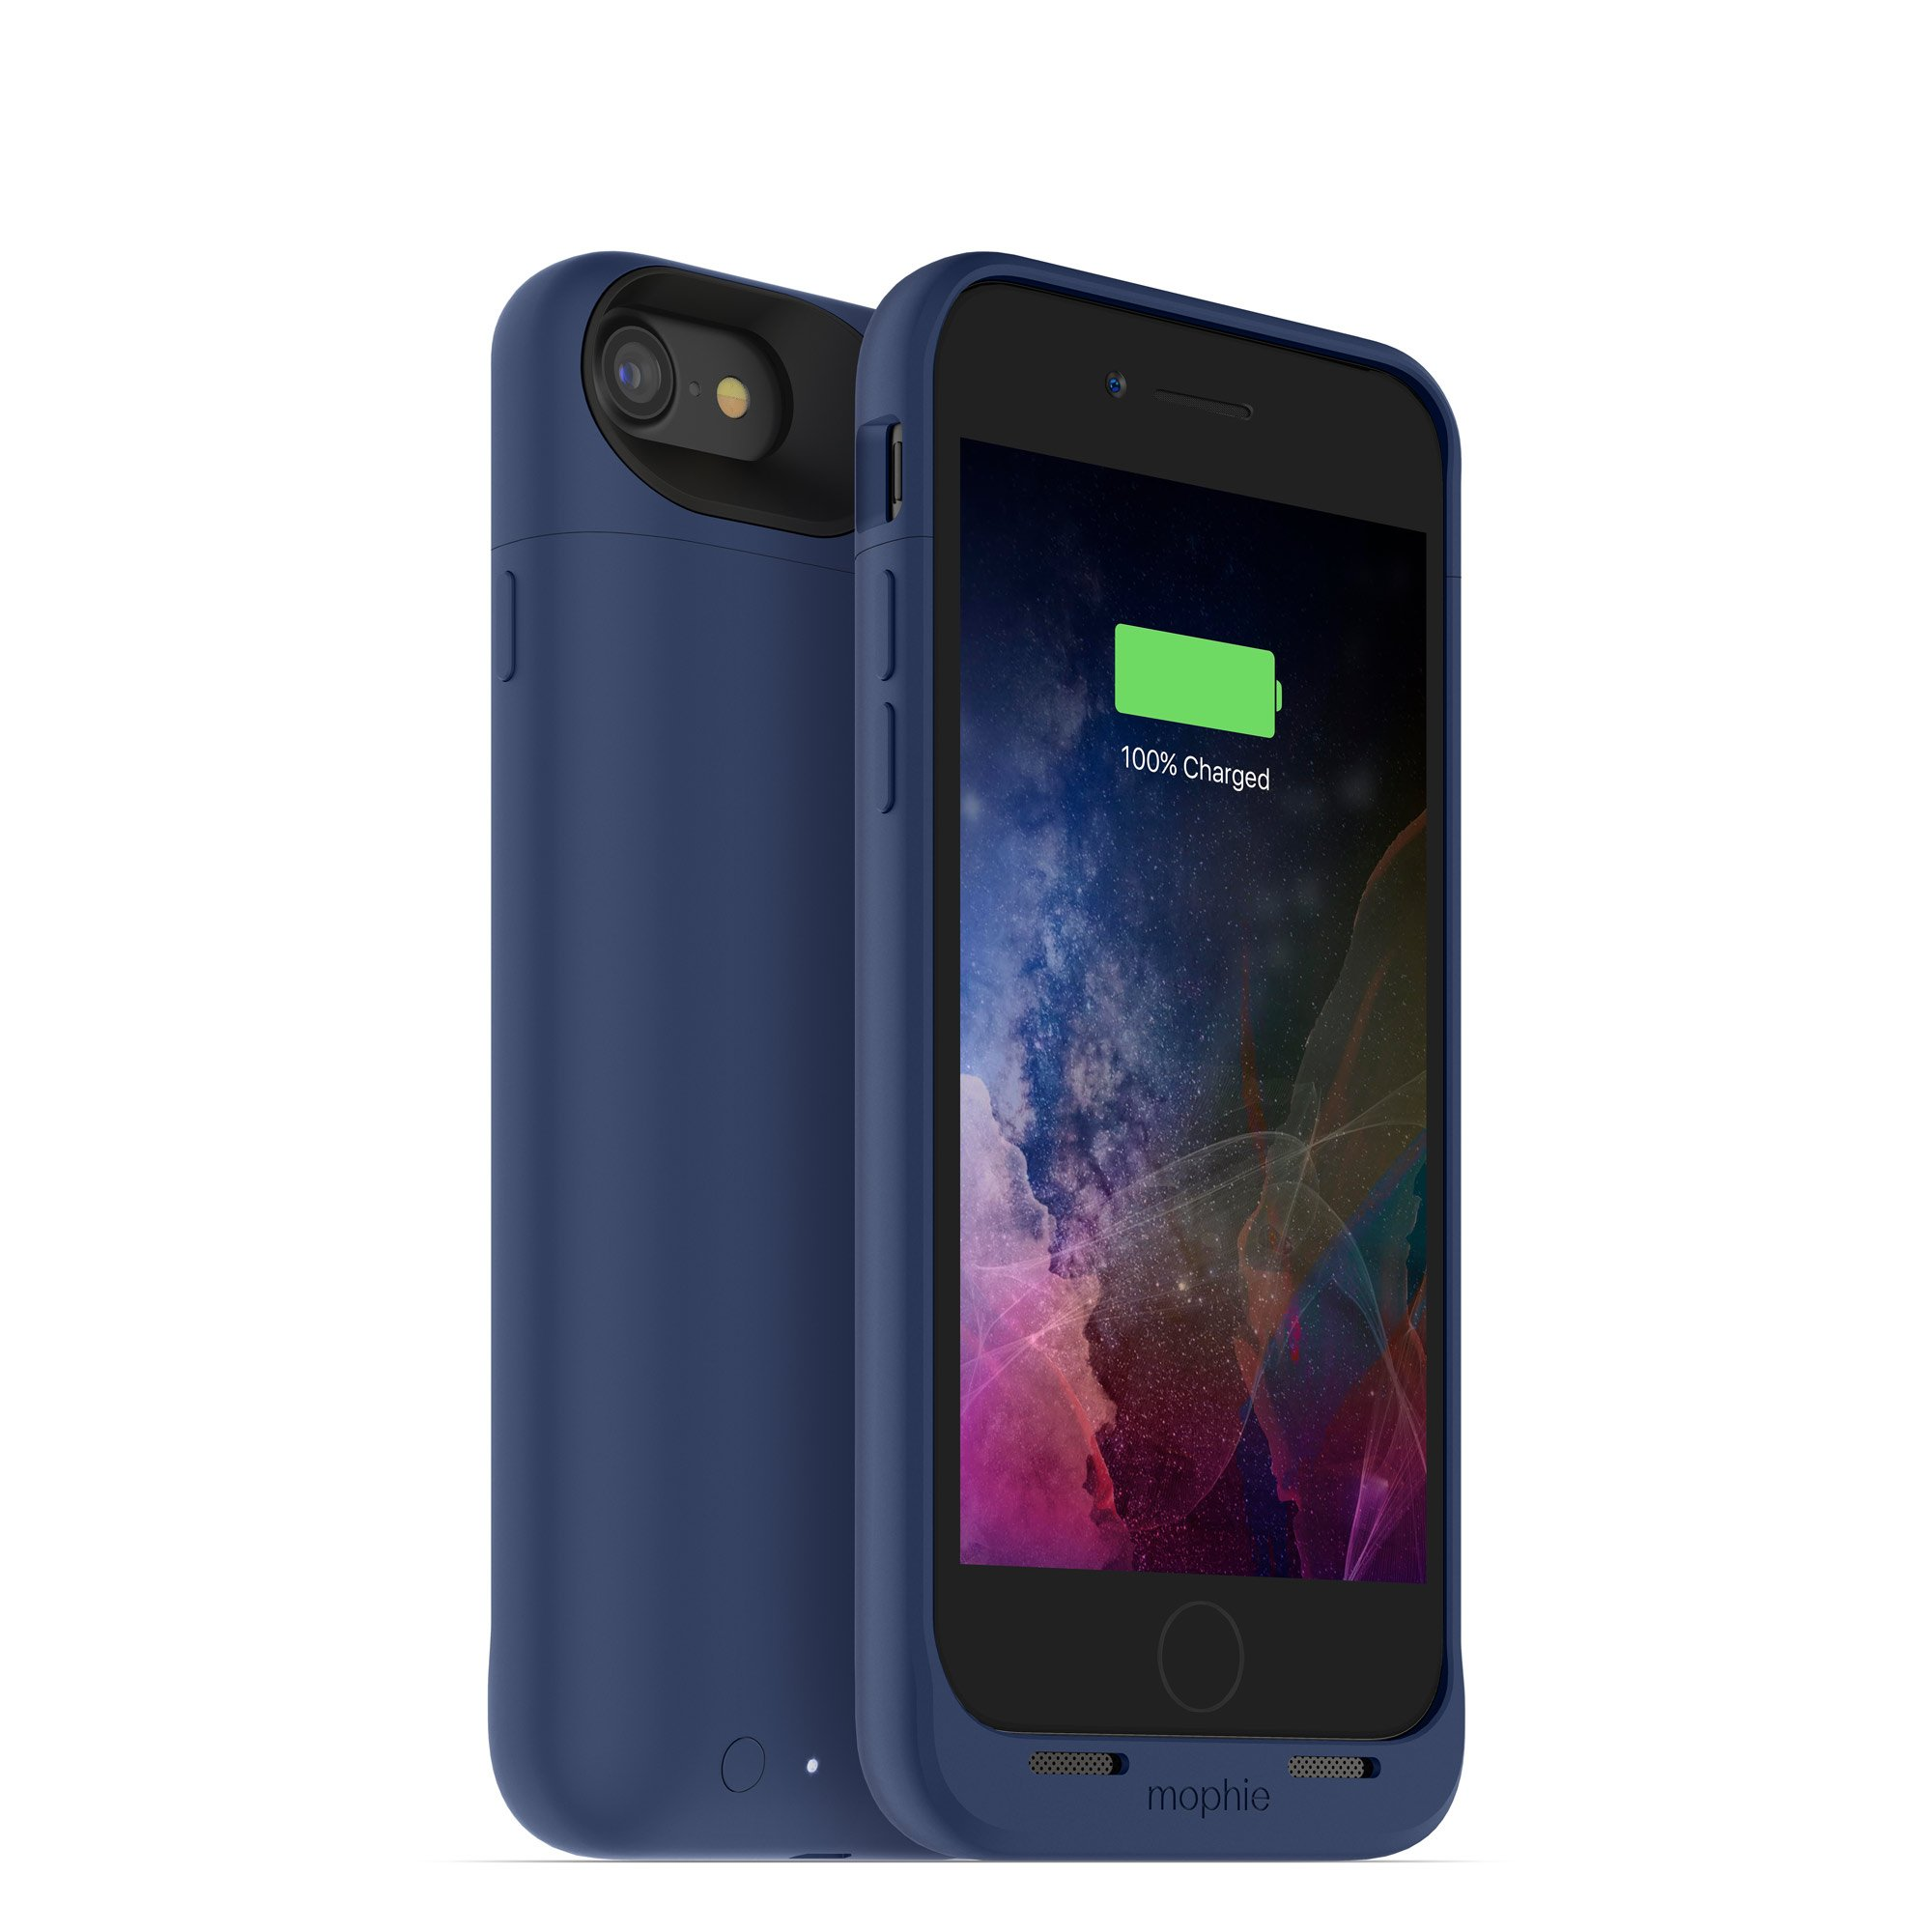 mophie juice pack wireless  - Charge Force Wireless Power - Wireless Charging Protective Battery Pack Case for iPhone 8 and iPhone 7 - Blue